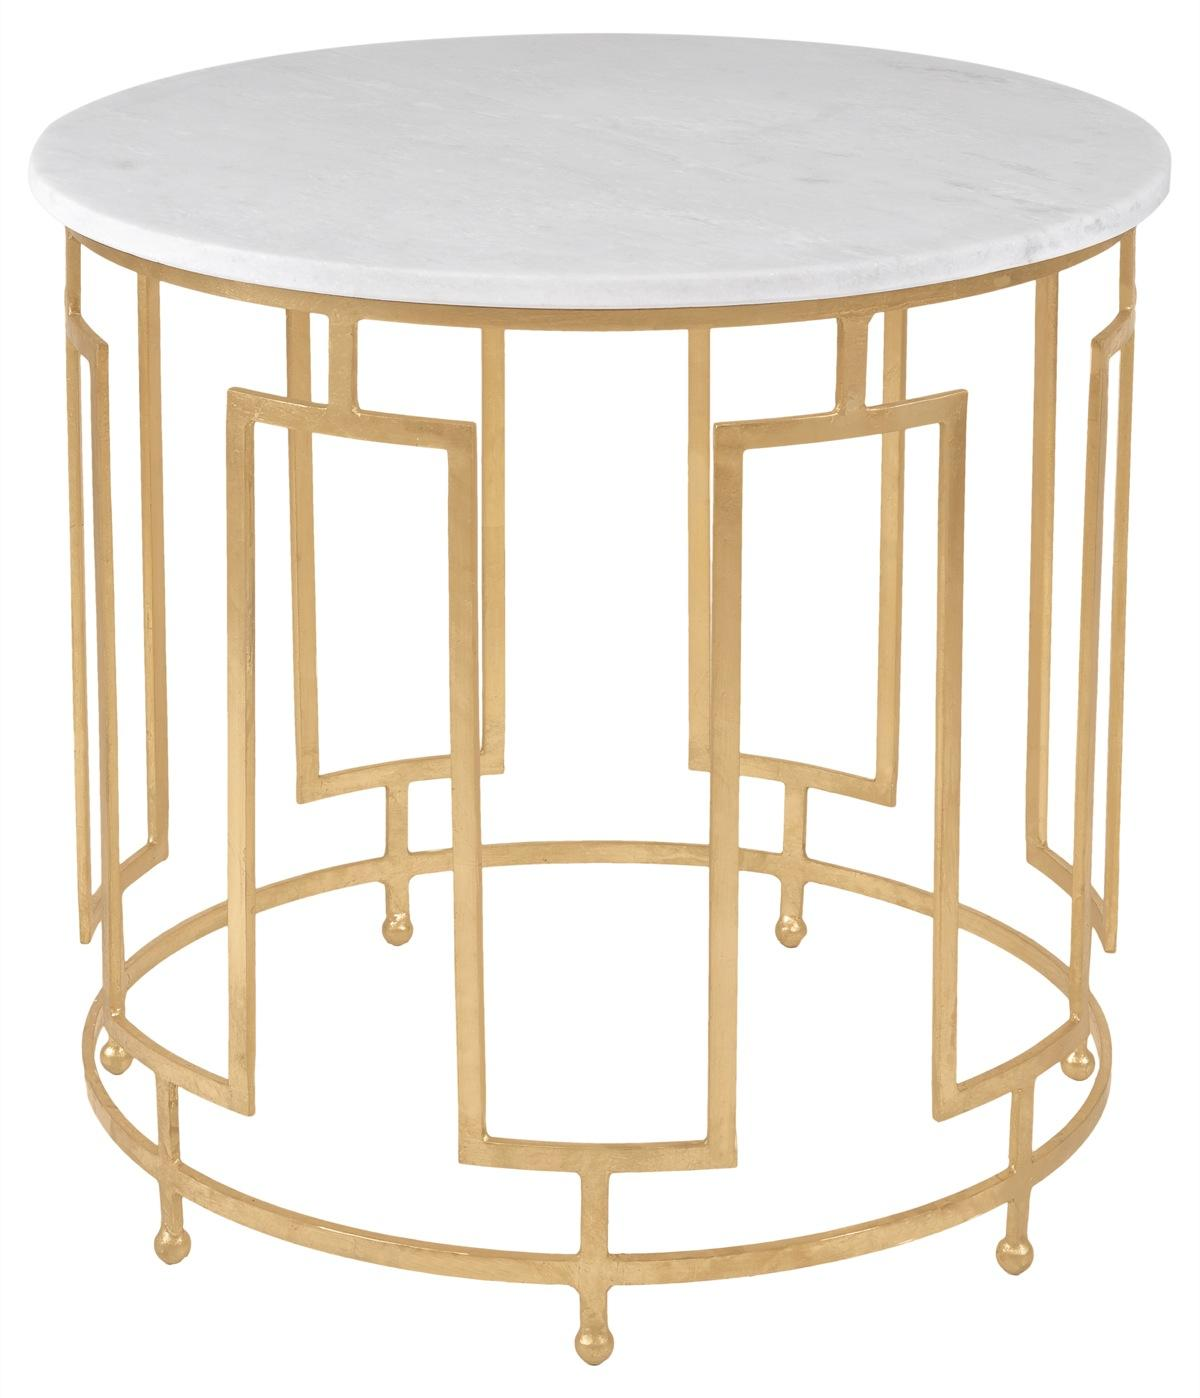 gold marble accent table design ideas front nate berkus round with top caldwell white tables safavieh foyer chest drawers and wood storage cube coffee tablecloth decorative